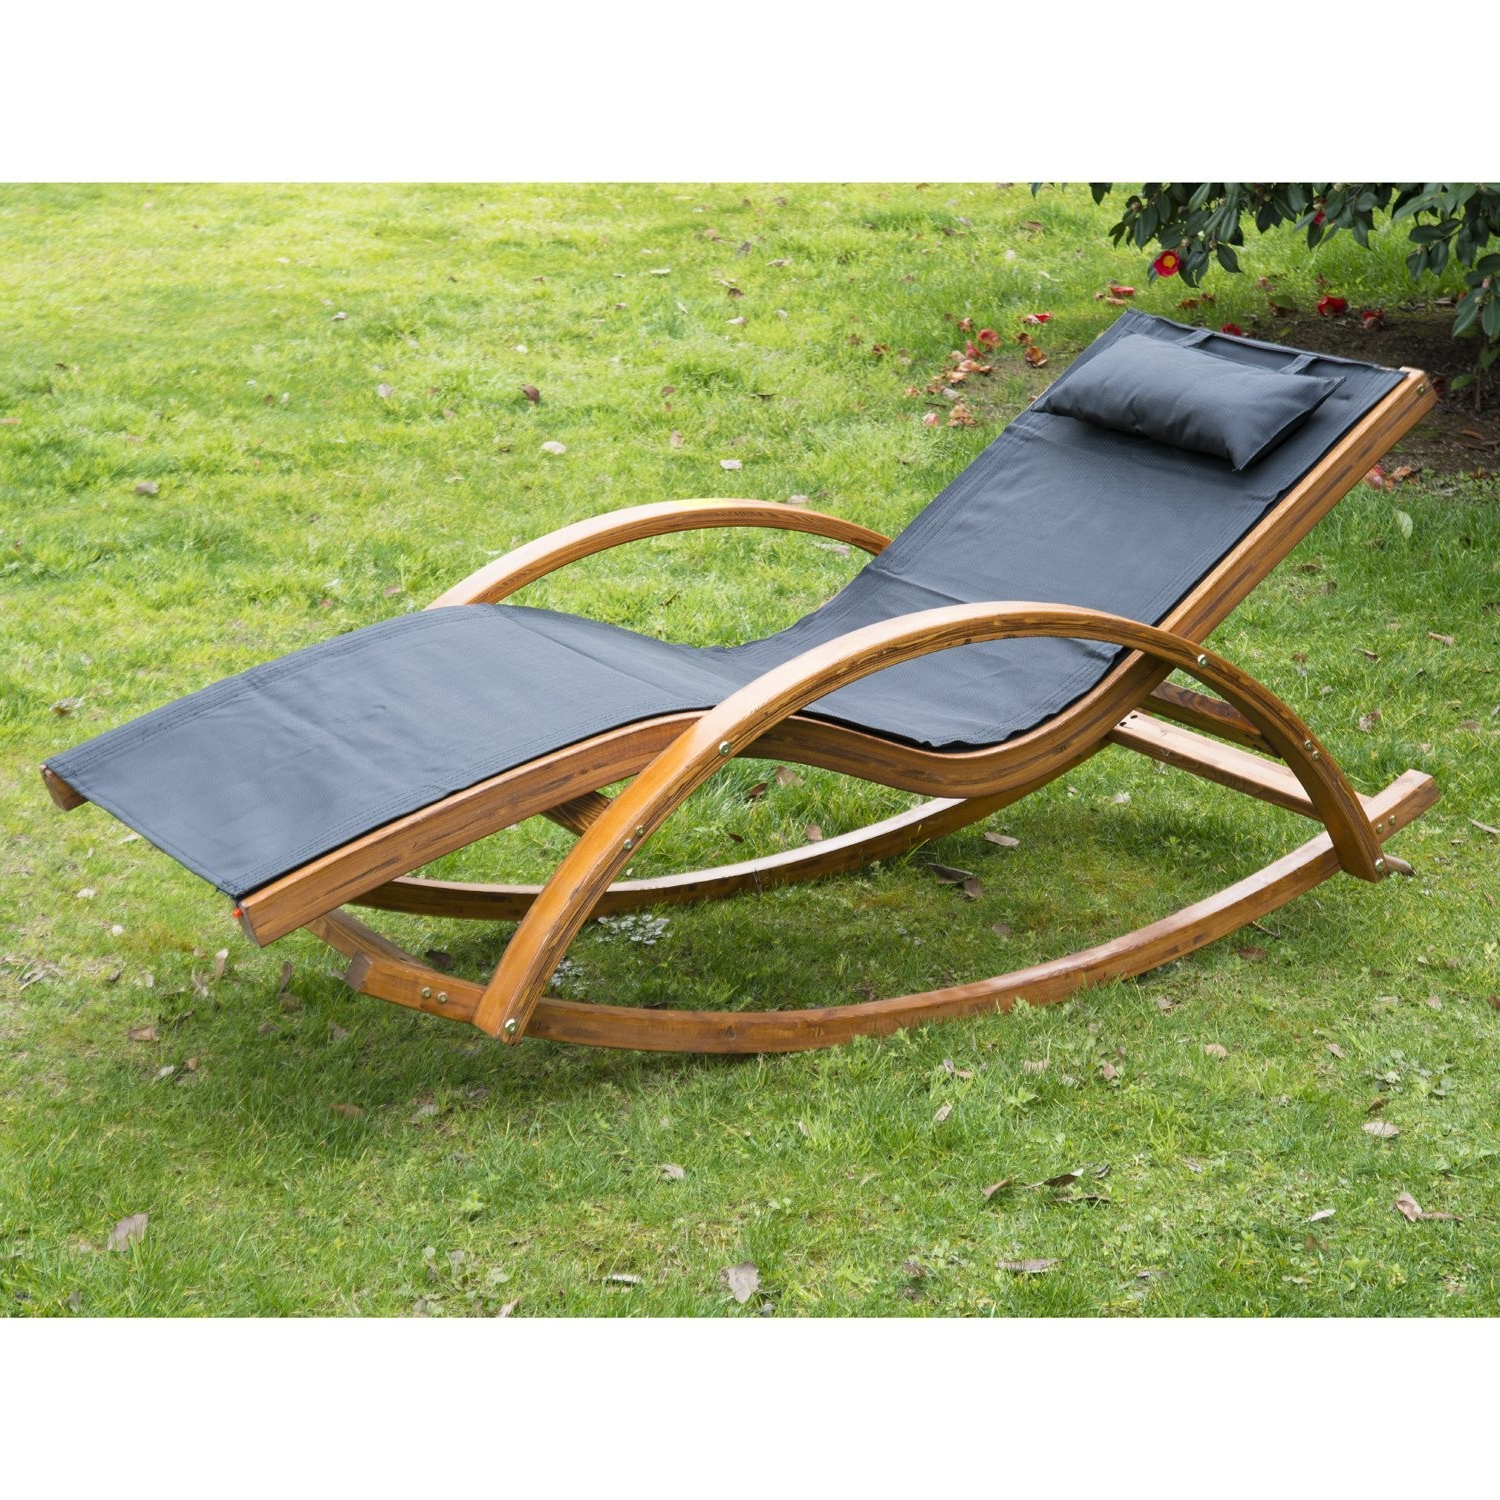 Outsunny Wooden Garden Recliner Rocker Lounger – Ideal Home Intended For Best And Newest Outdoor Rocking Loungers (View 17 of 25)